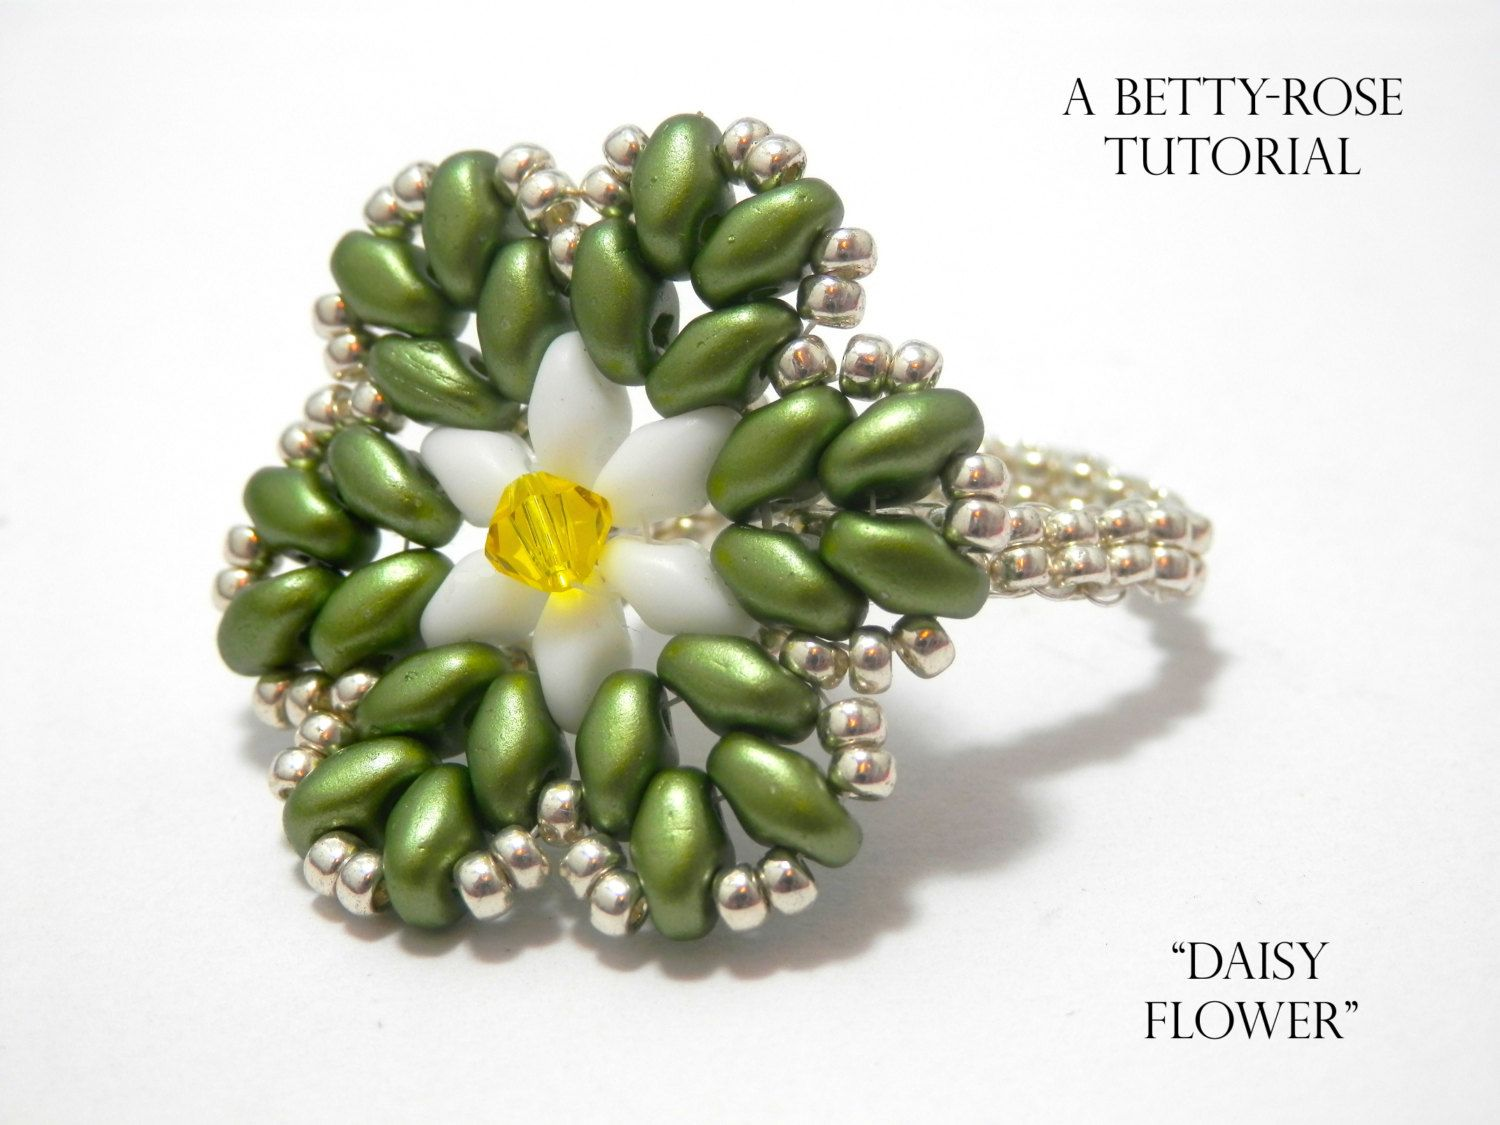 Tutorial for daisy flower ring with por bettyrosetutorials en etsy tutorial for daisy flower ring with por bettyrosetutorials en etsy izmirmasajfo